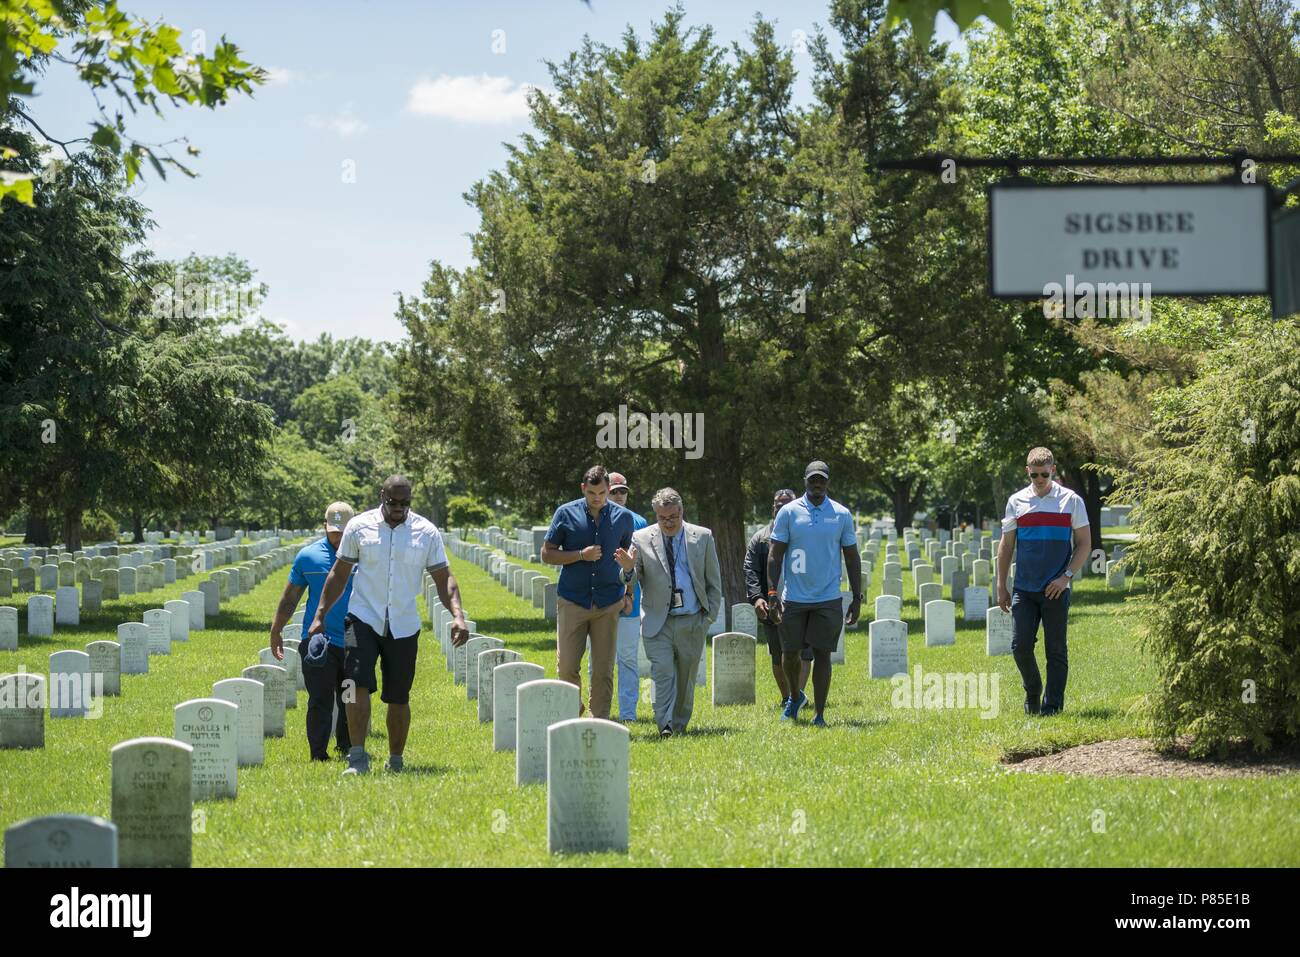 Rod Gainer (center), historian, Arlington National Cemetery, leads a tour with members of the Detroit Lions next to the Mast of the Maine in Section 23 of Arlington National Cemetery, Arlington, Virginia, June 12, 2018, June 12, 2018. The Lions visited Arlington National Cemetery to participate in an educational staff ride where they spoke with cemetery representatives, field operations, received a tour of the Memorial Amphitheater Display Room from ANC historians, and watched the Changing of the Guard Ceremony at the Tomb of the Unknown Soldier. (U.S. Army photo by Elizabeth Fraser / Arlingto - Stock Image